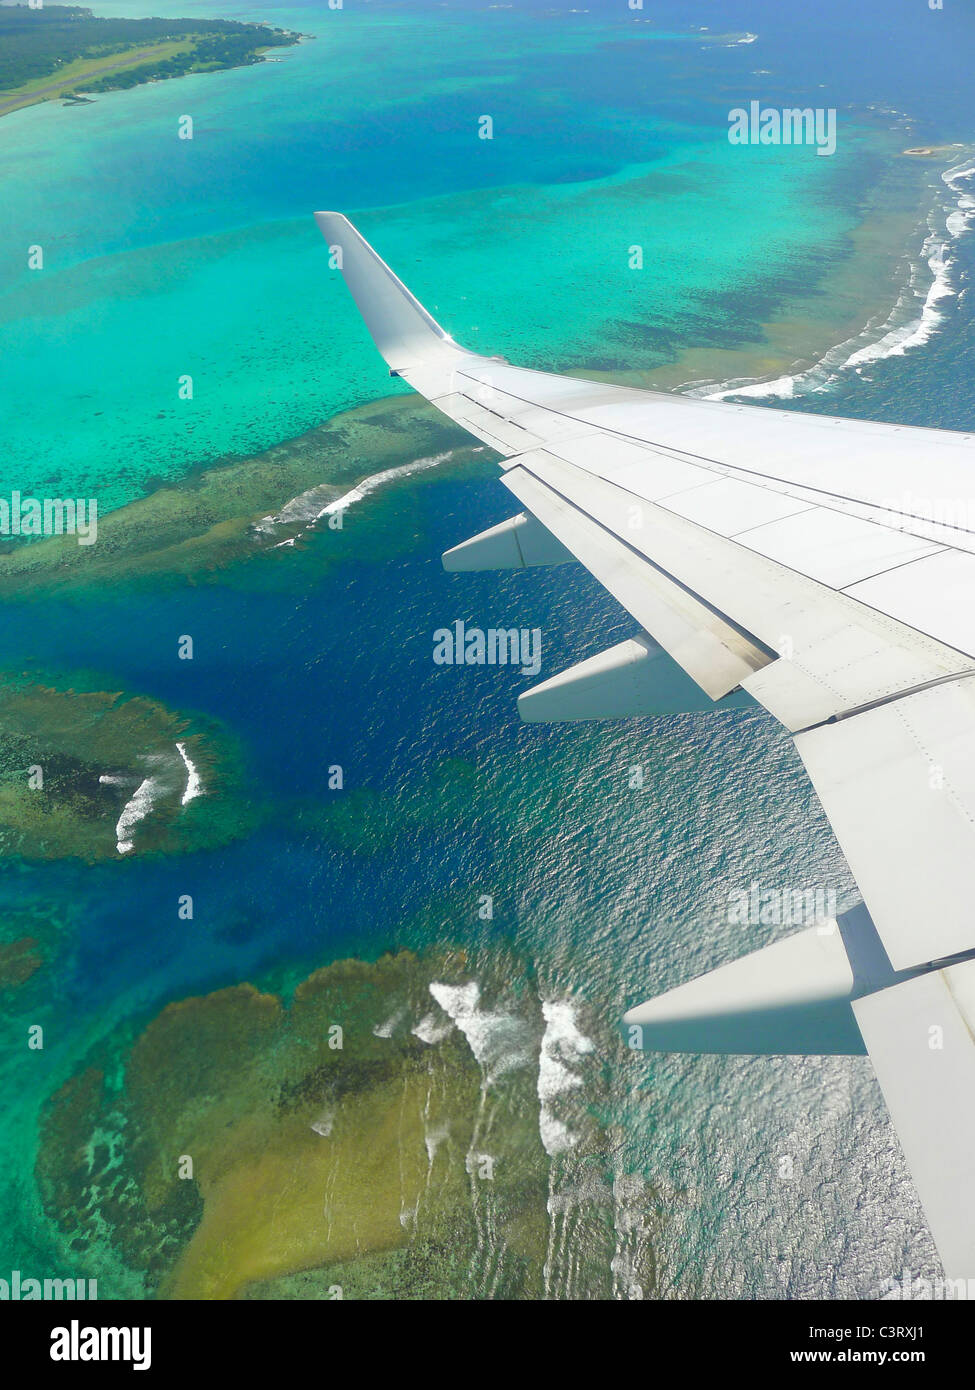 Airplane, South Pacific - Stock Image